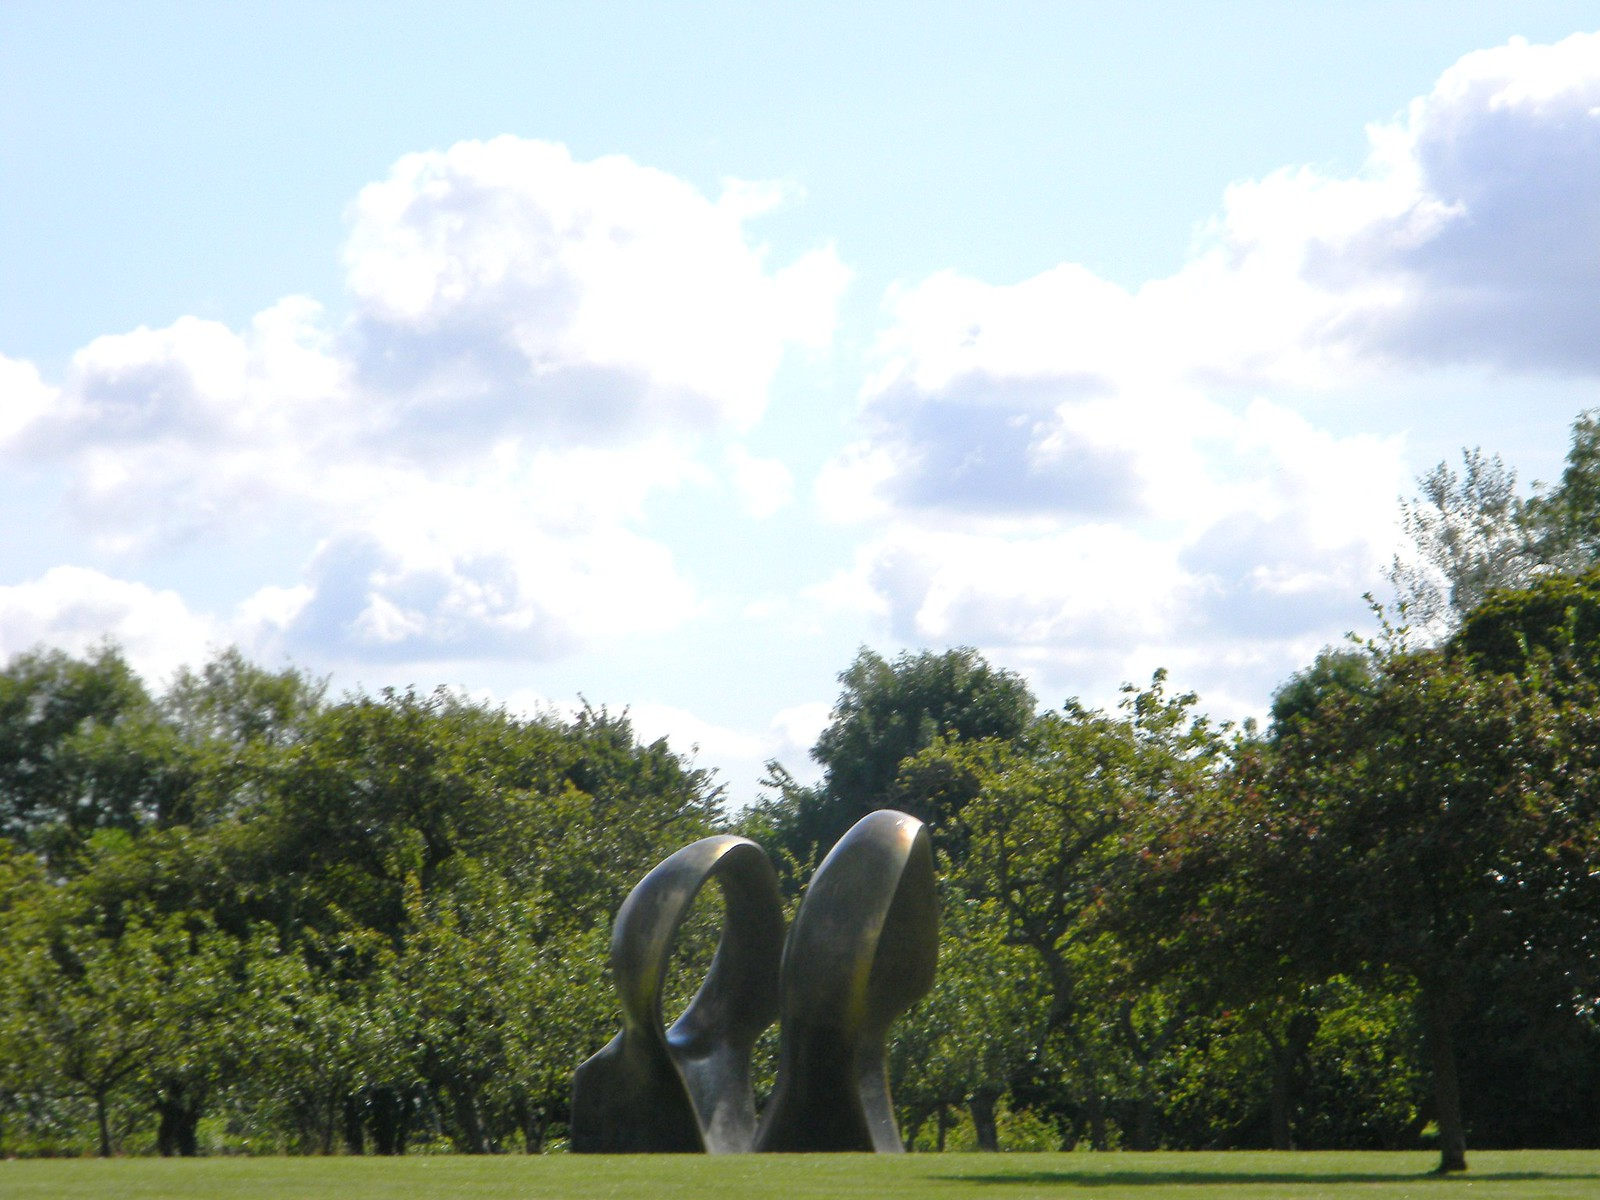 Sculpture Henry Moore Sculpture Park Roydon to Sawbridgeworth